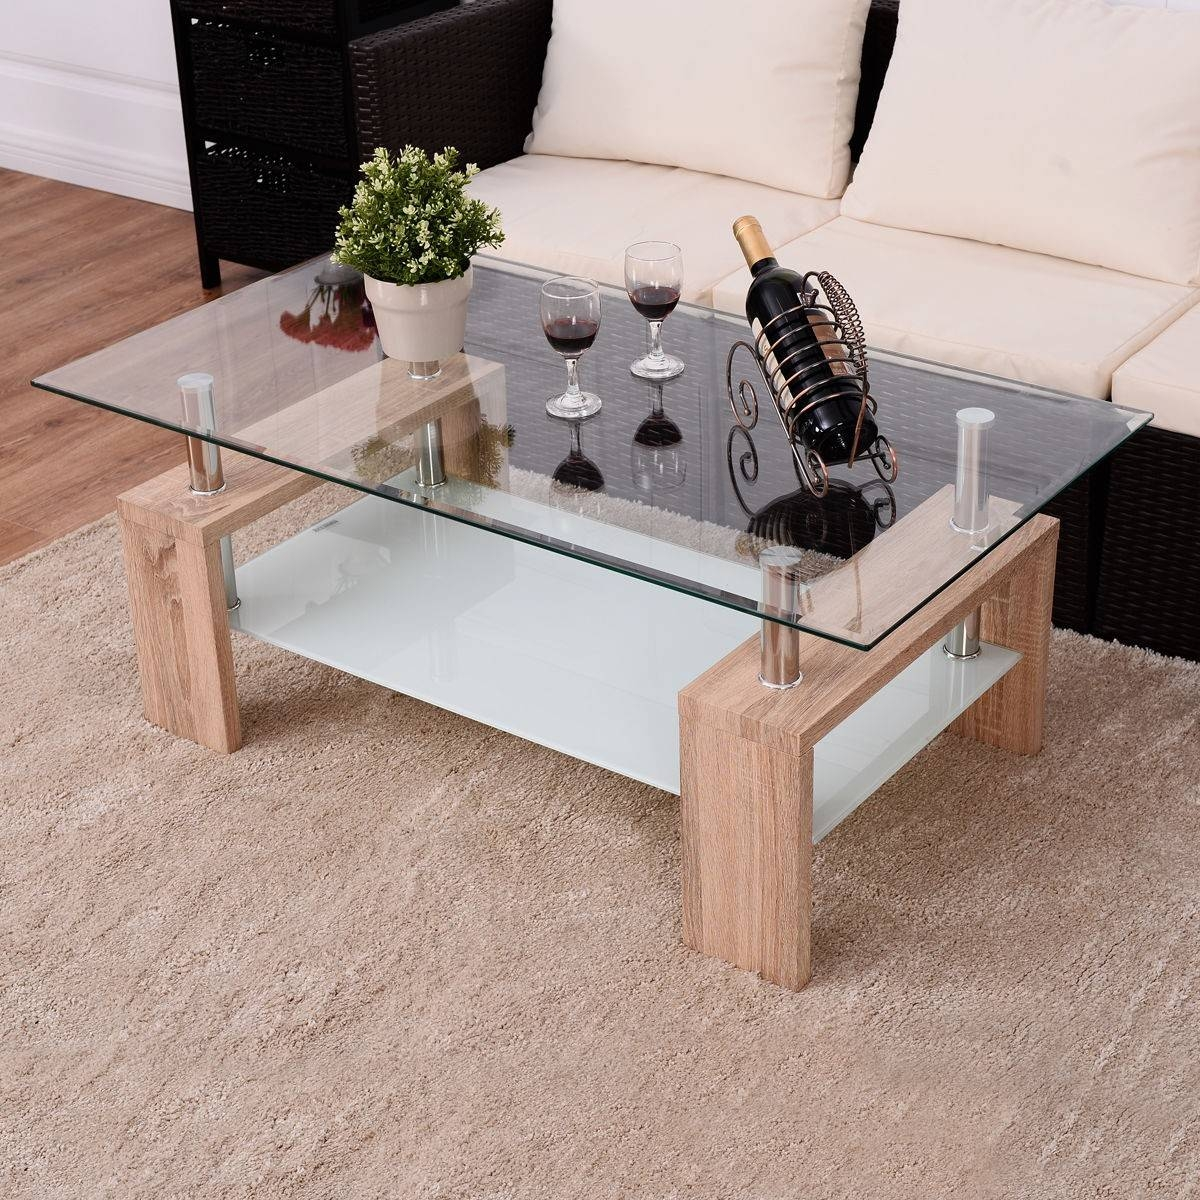 Rectangular Tempered Glass Coffee Table W/ Shelf - Coffee Tables for Glass Coffee Tables With Shelf (Image 24 of 30)